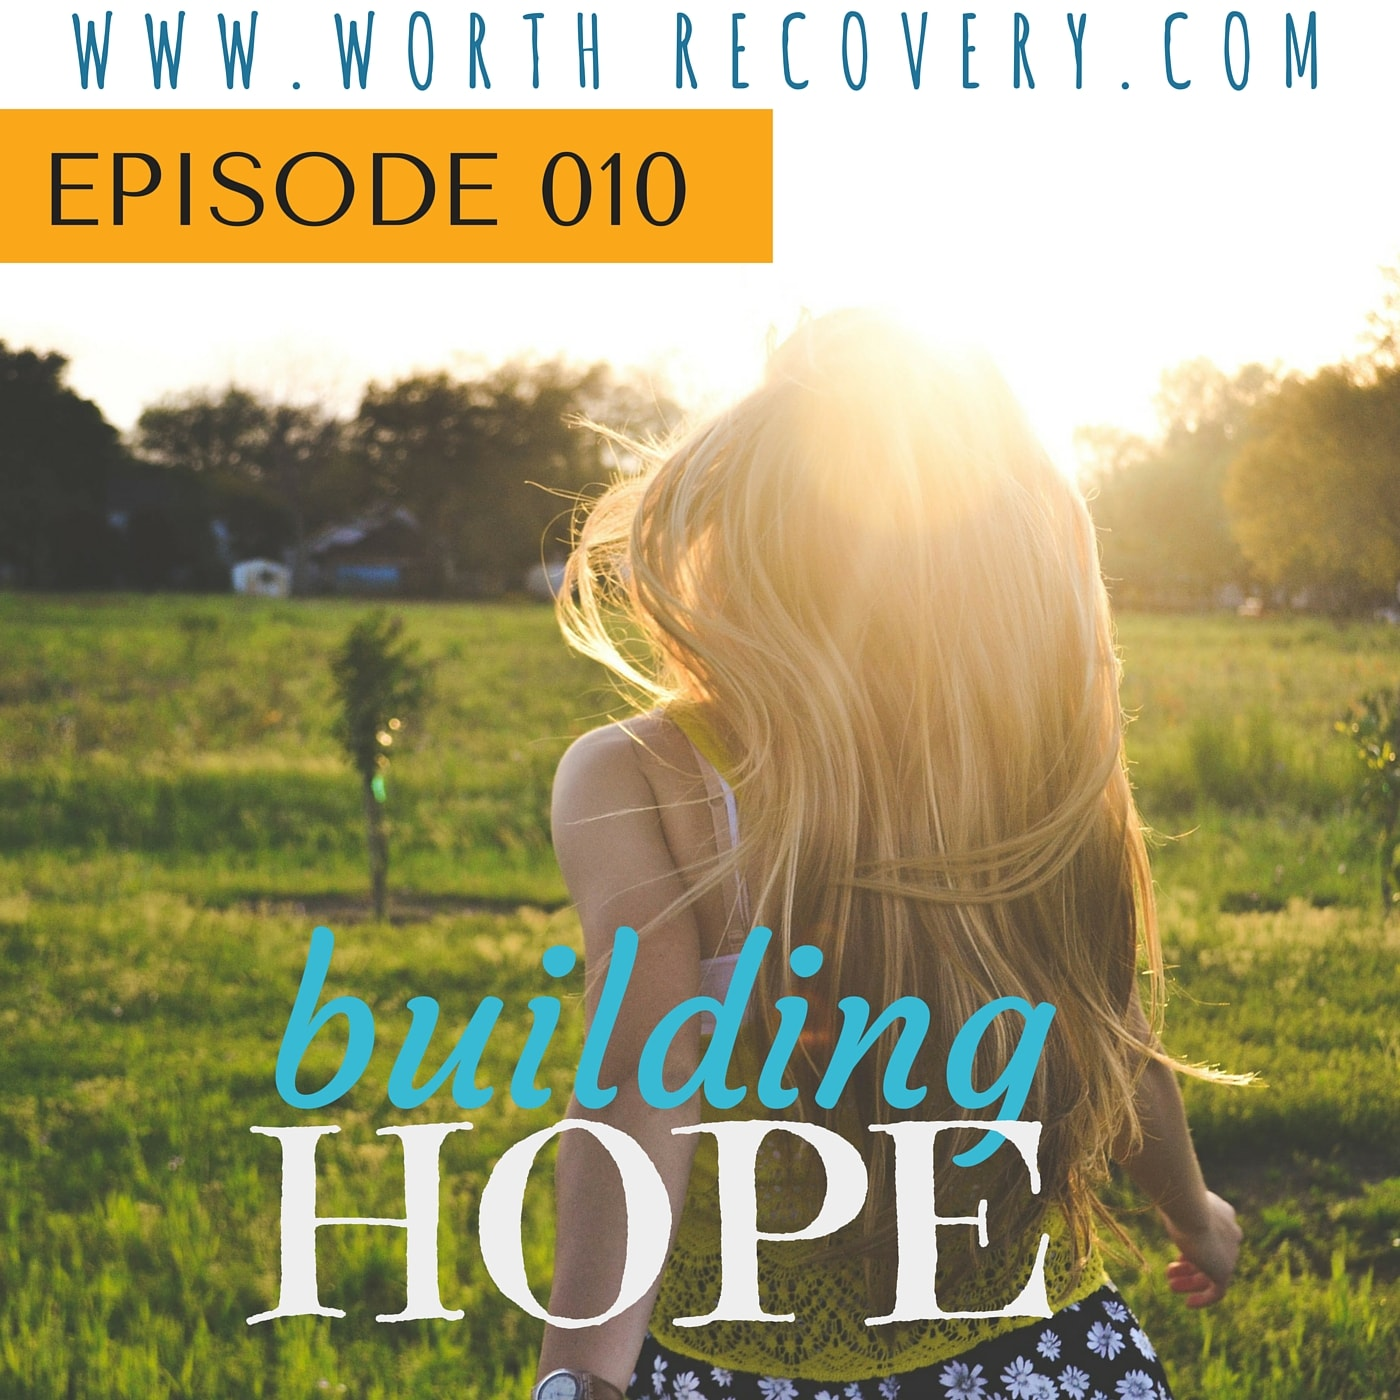 Episode 010: Building Hope